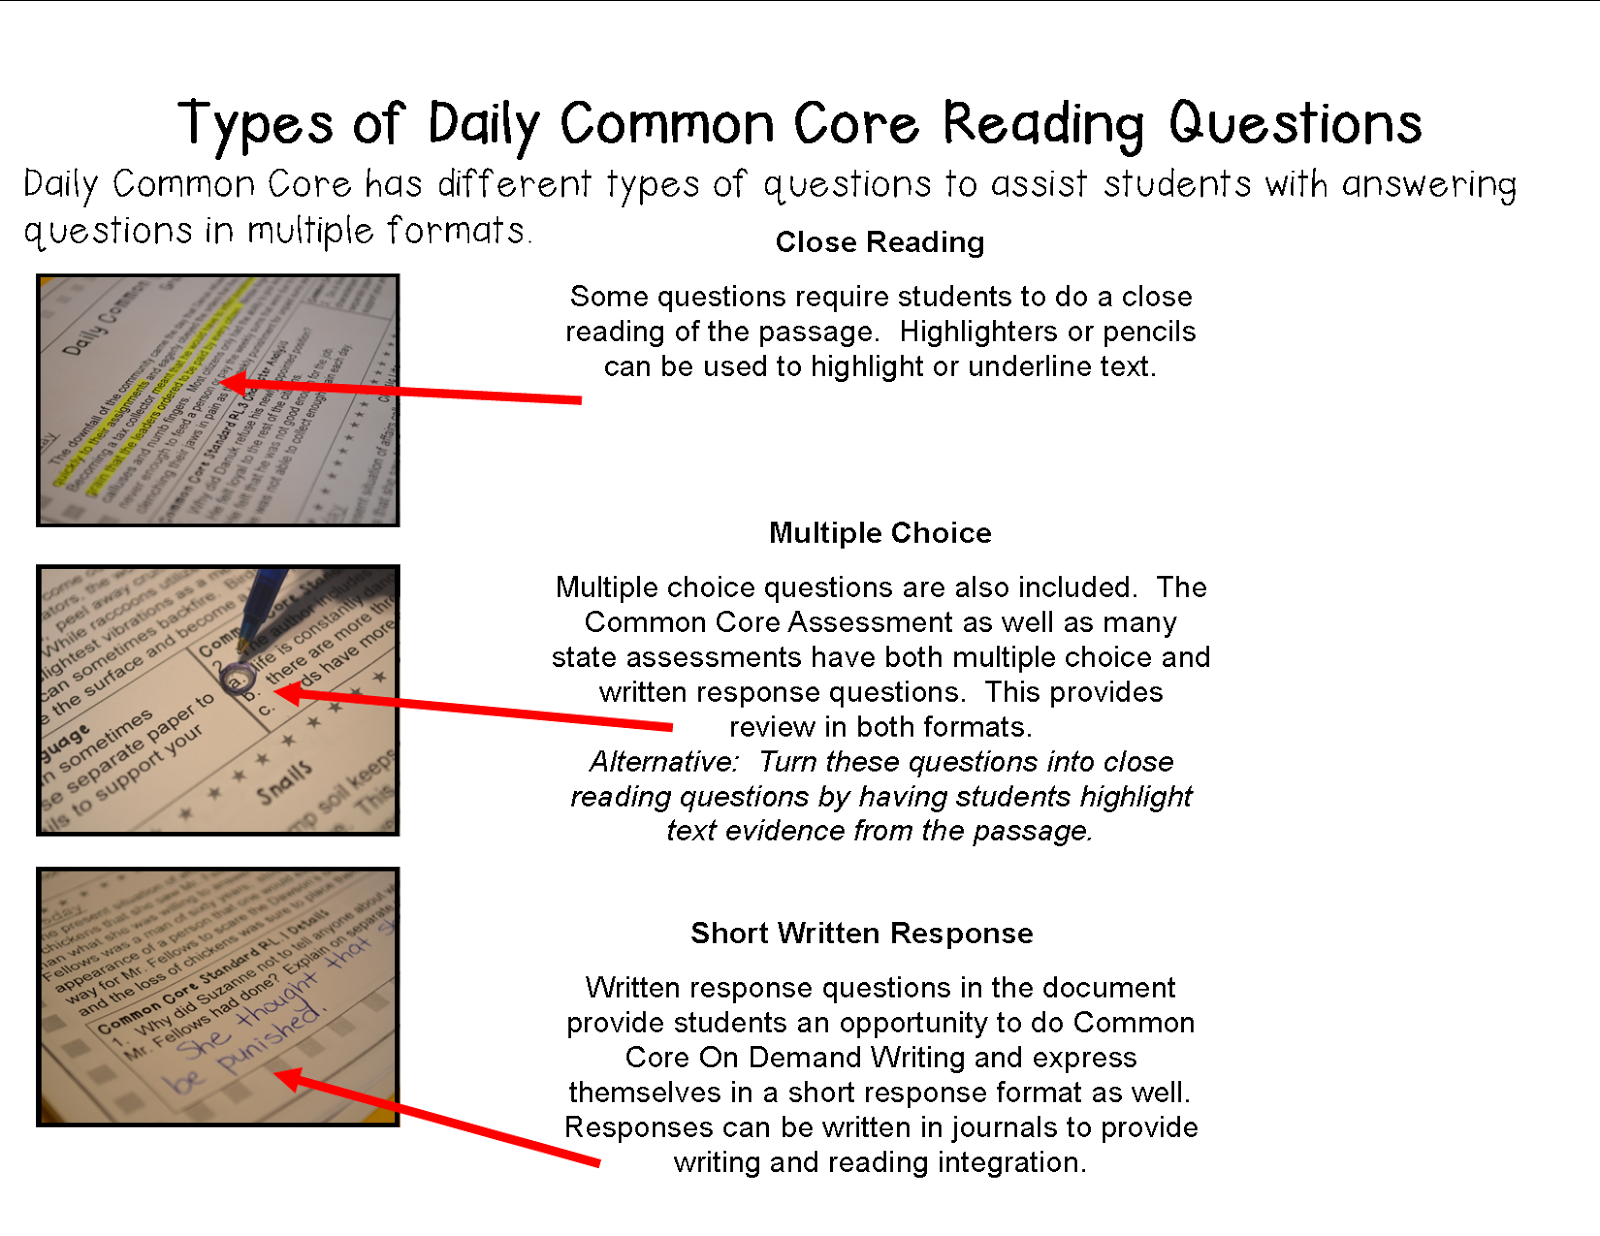 Worksheet Grade 5 Reading literacy math ideas a full school year of daily common core this document contains relevant informational text topics that are commonly taught in fifth grade to make social studies and scie